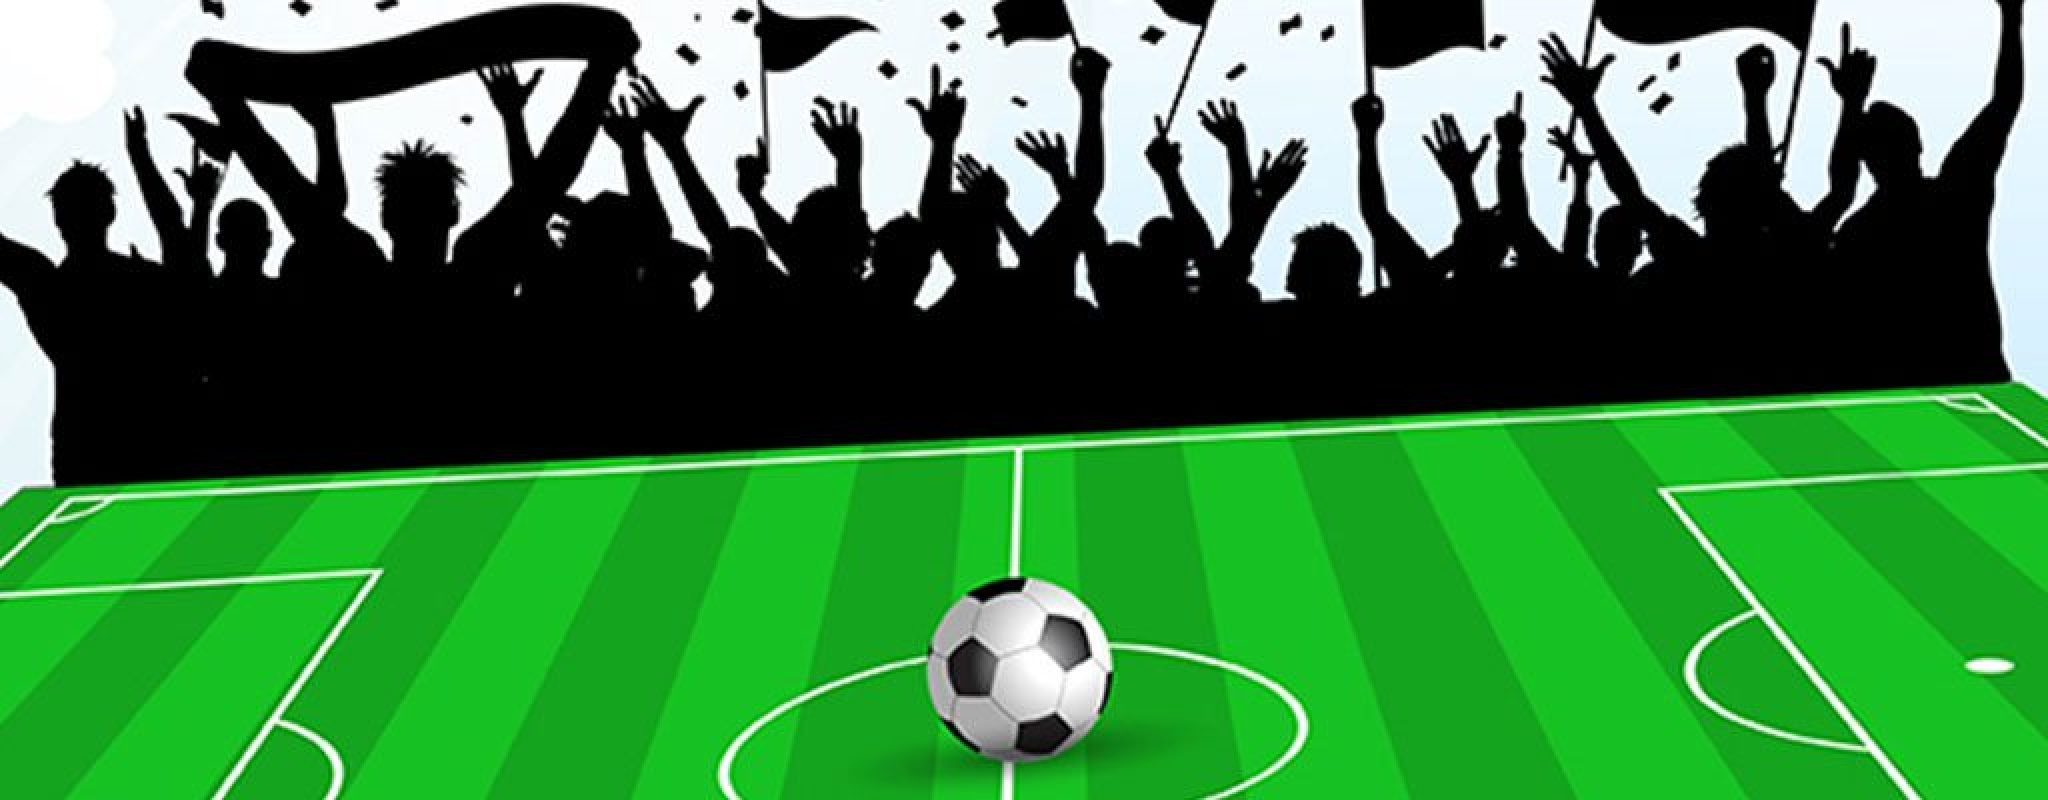 Sports Betting Odds - Fantasy Football 247 - Premier League Tips